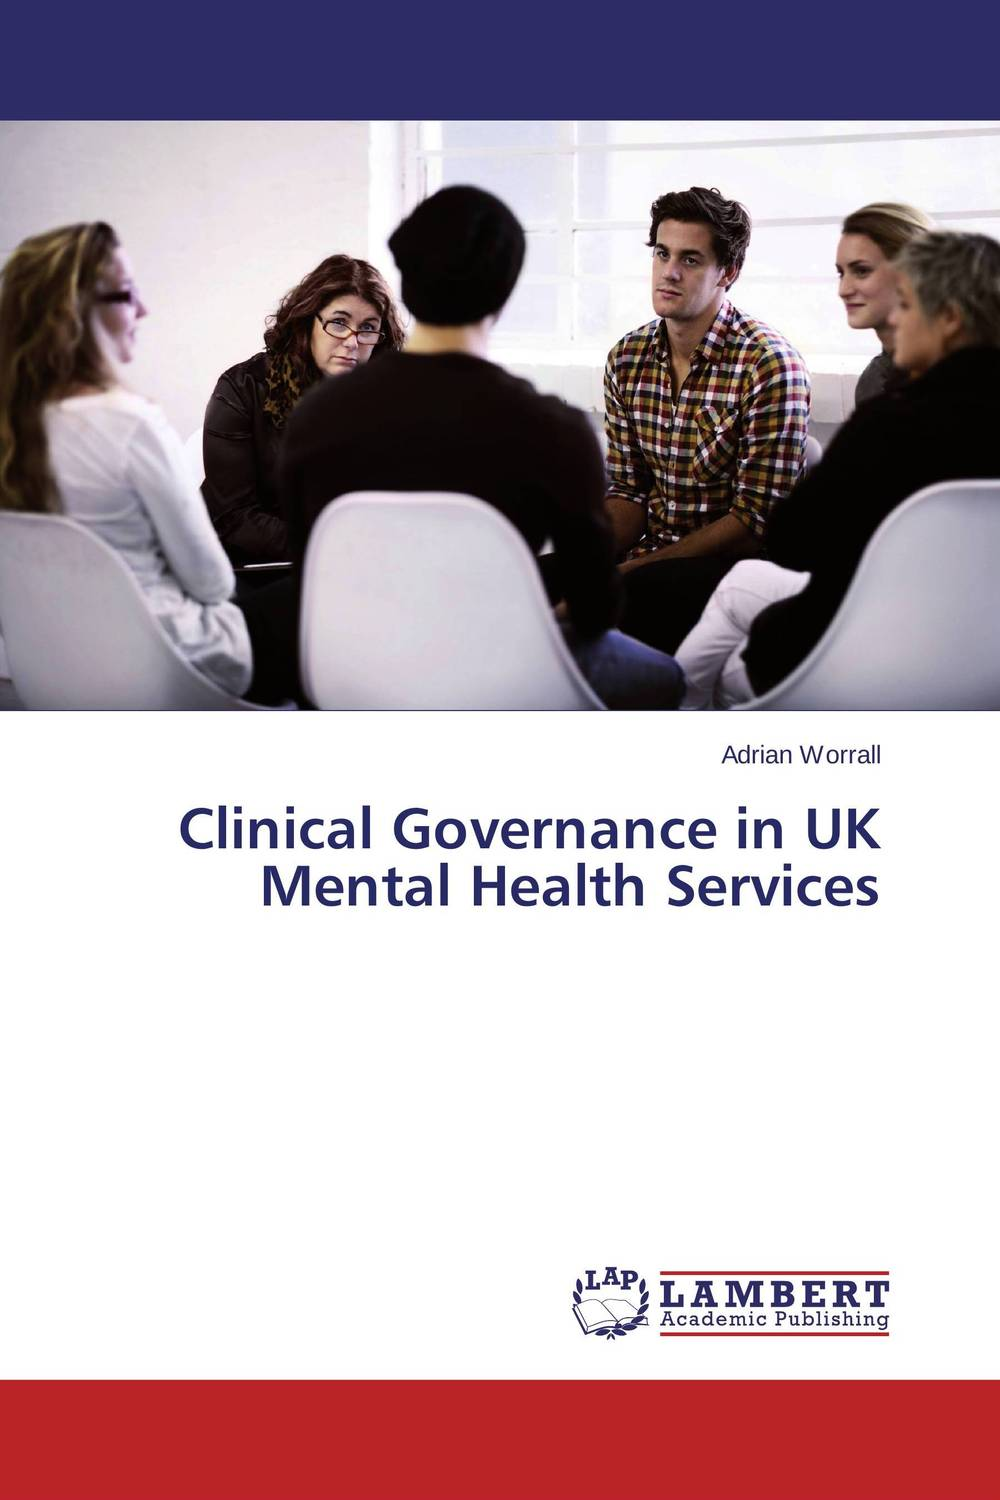 Clinical Governance in UK Mental Health Services a conscientious thought on worldwide latest governance system